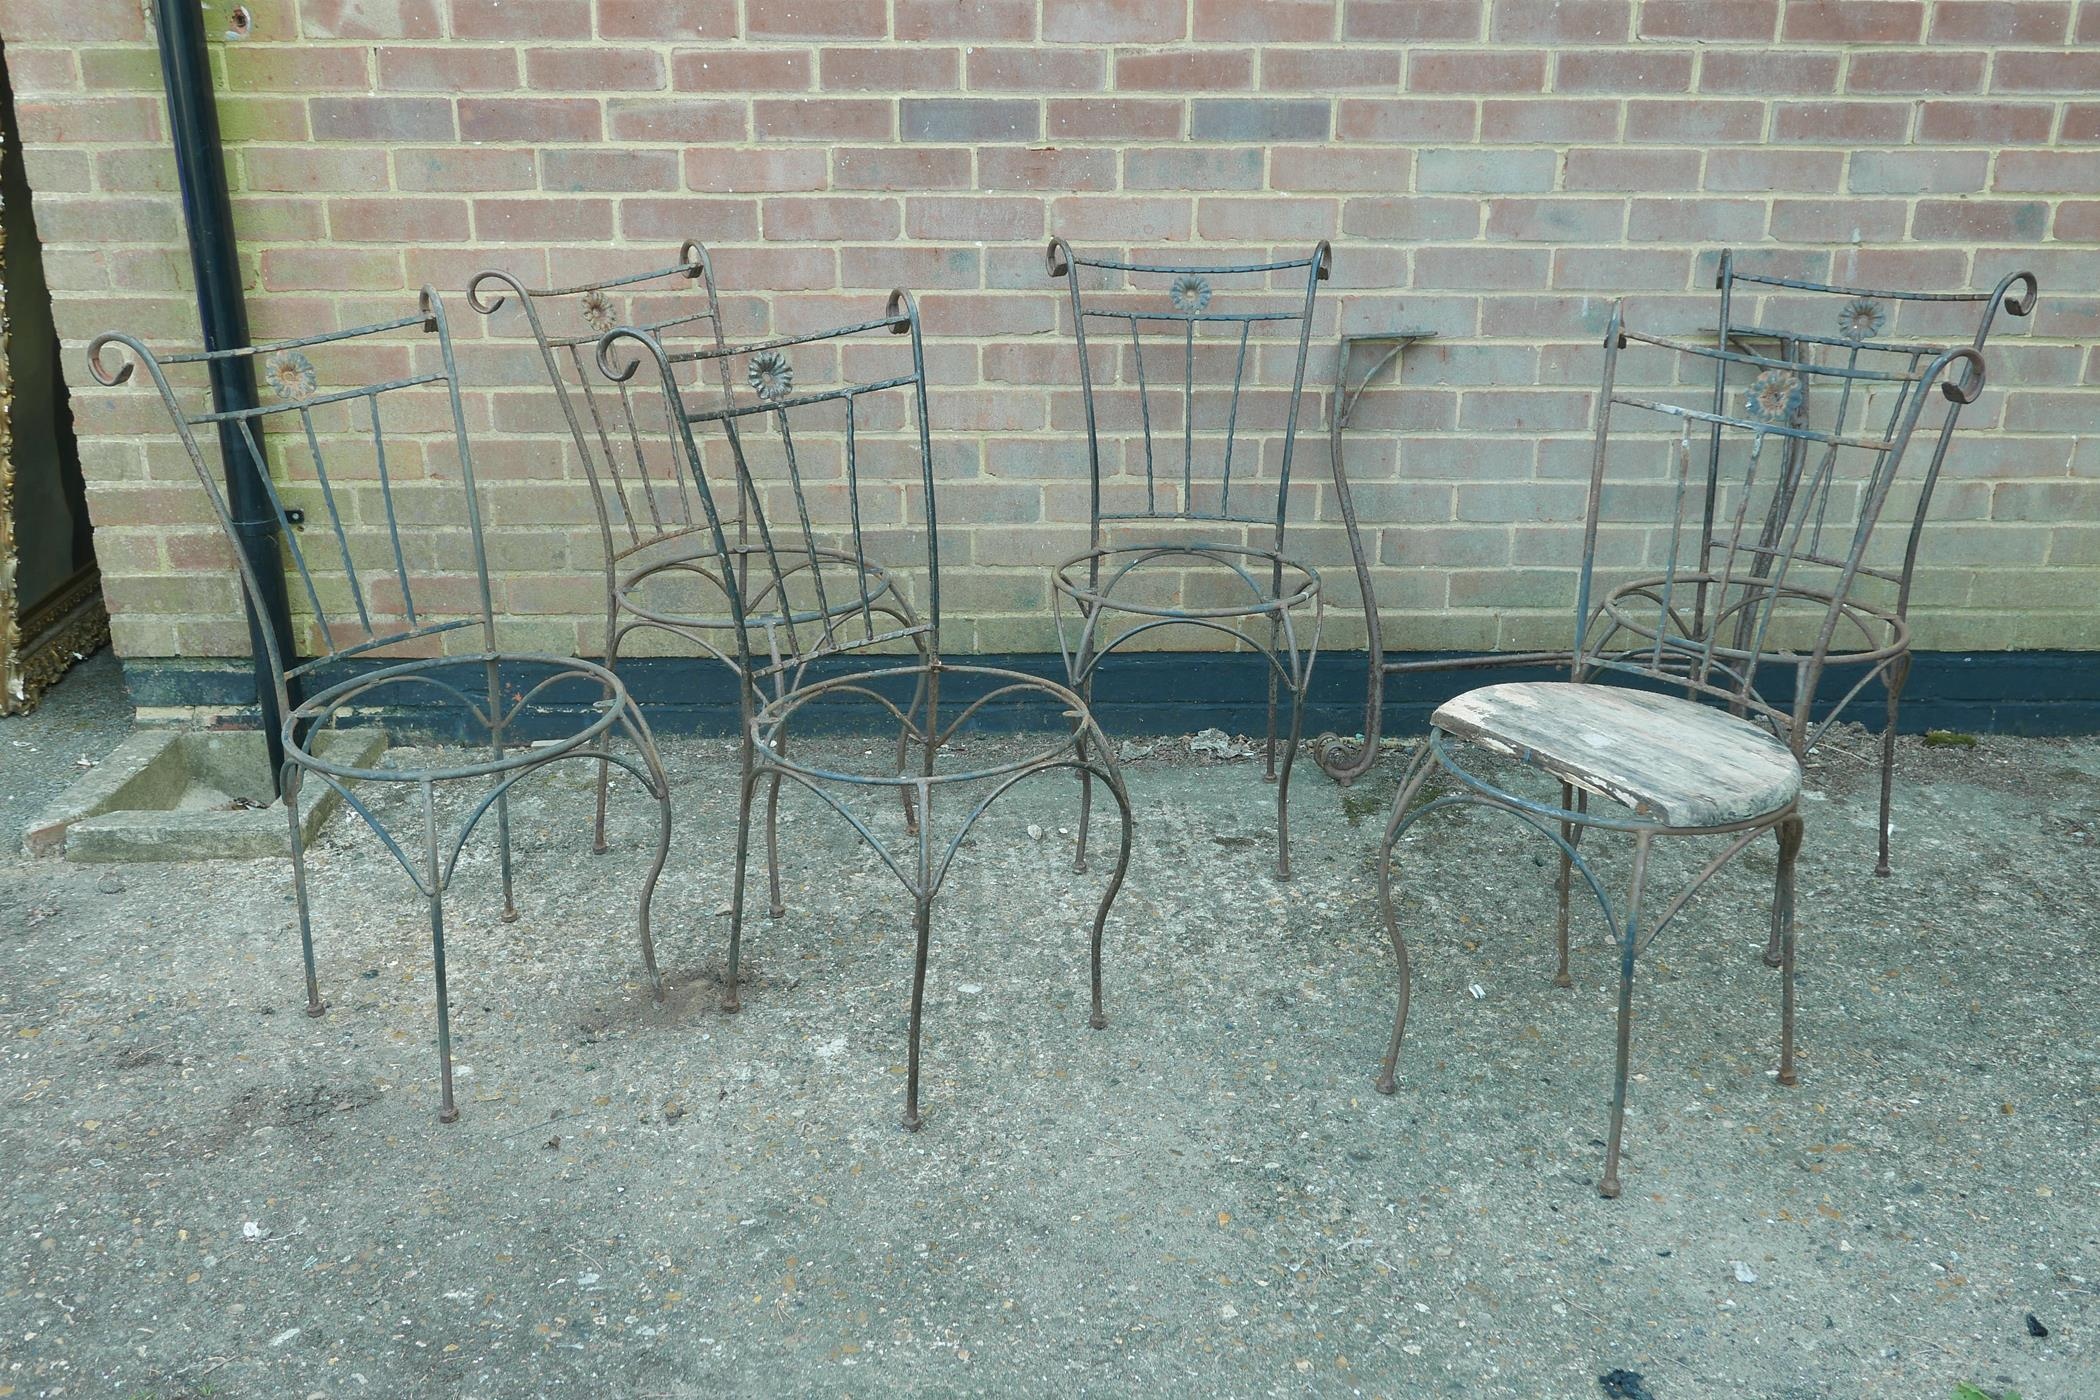 A set of six wrought iron garden chairs and matching table base, A/F, lack seats - Image 3 of 4